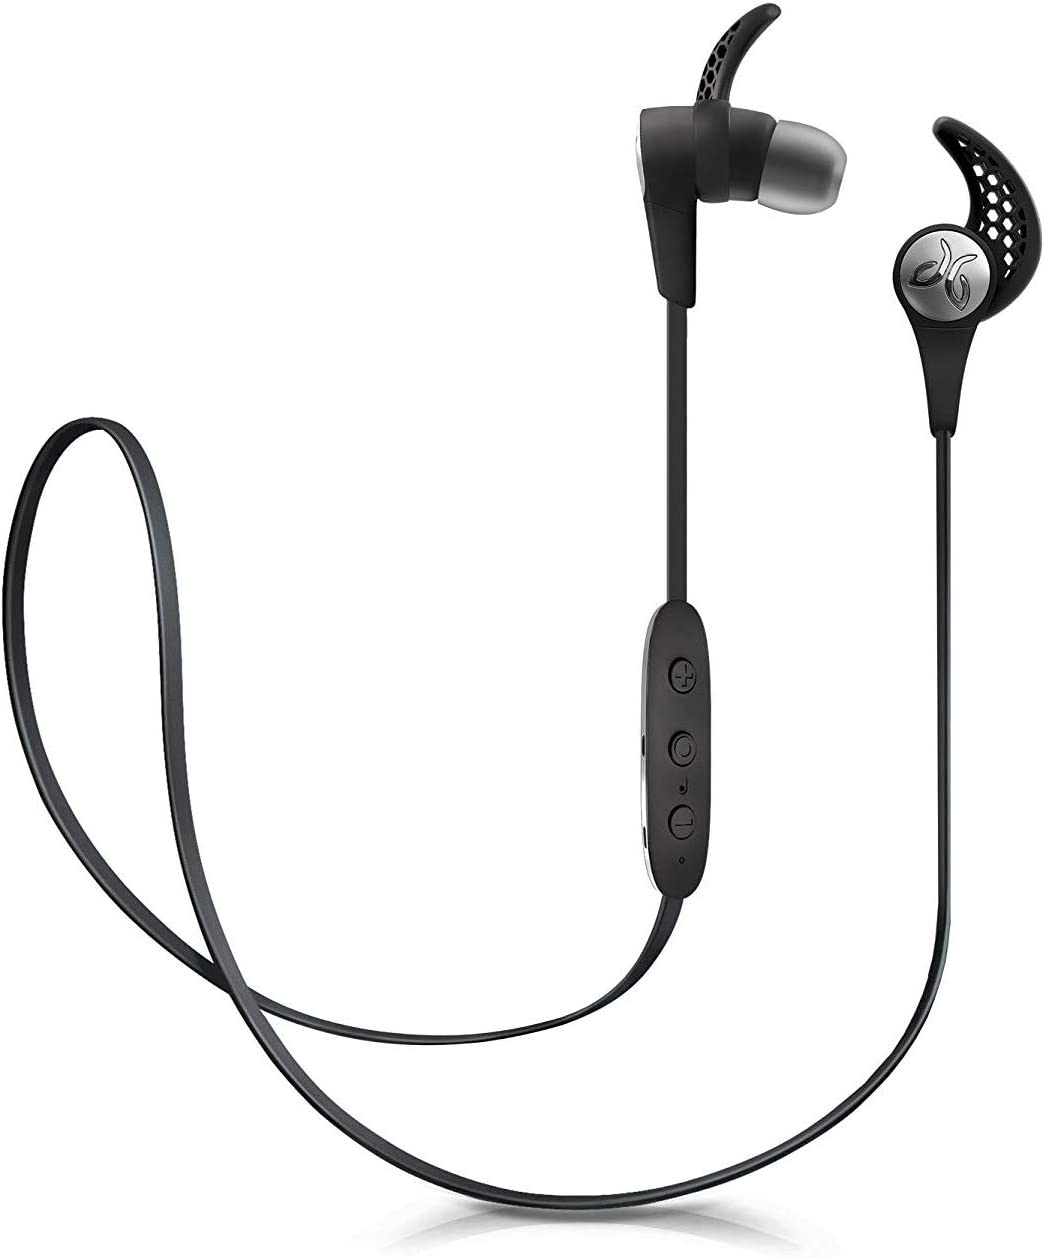 Amazon Com Jaybird X3 Sport Bluetooth Headset For Iphone And Android Blackout Renewed Electronics